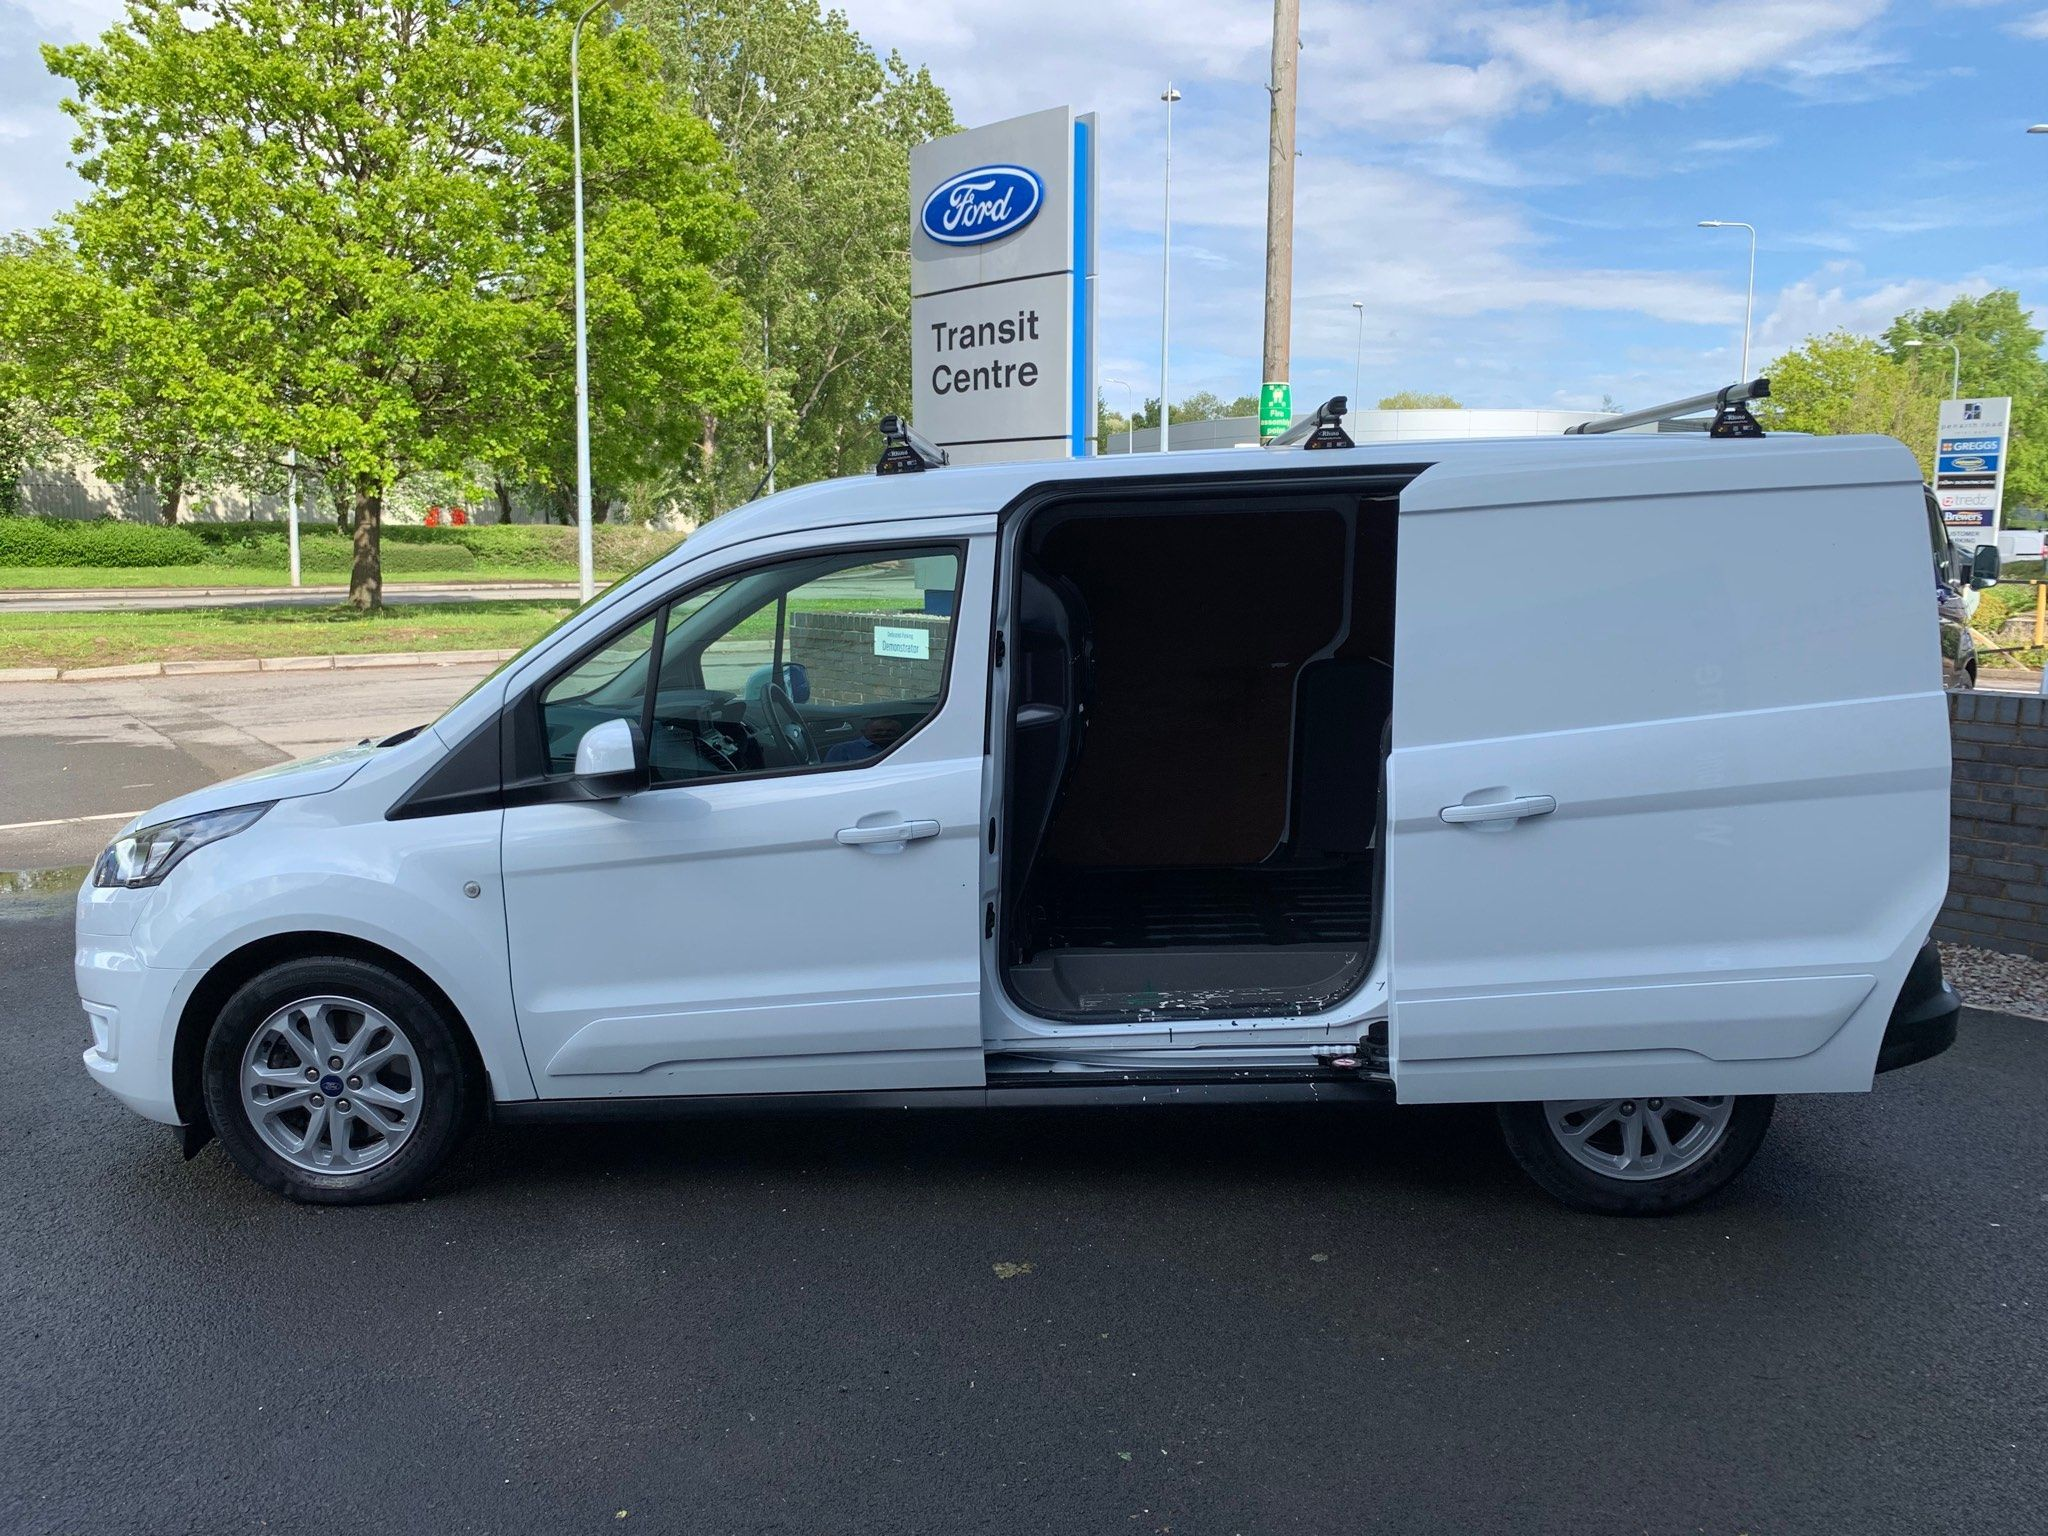 2019 Ford Transit Connect EcoBlue Limited full